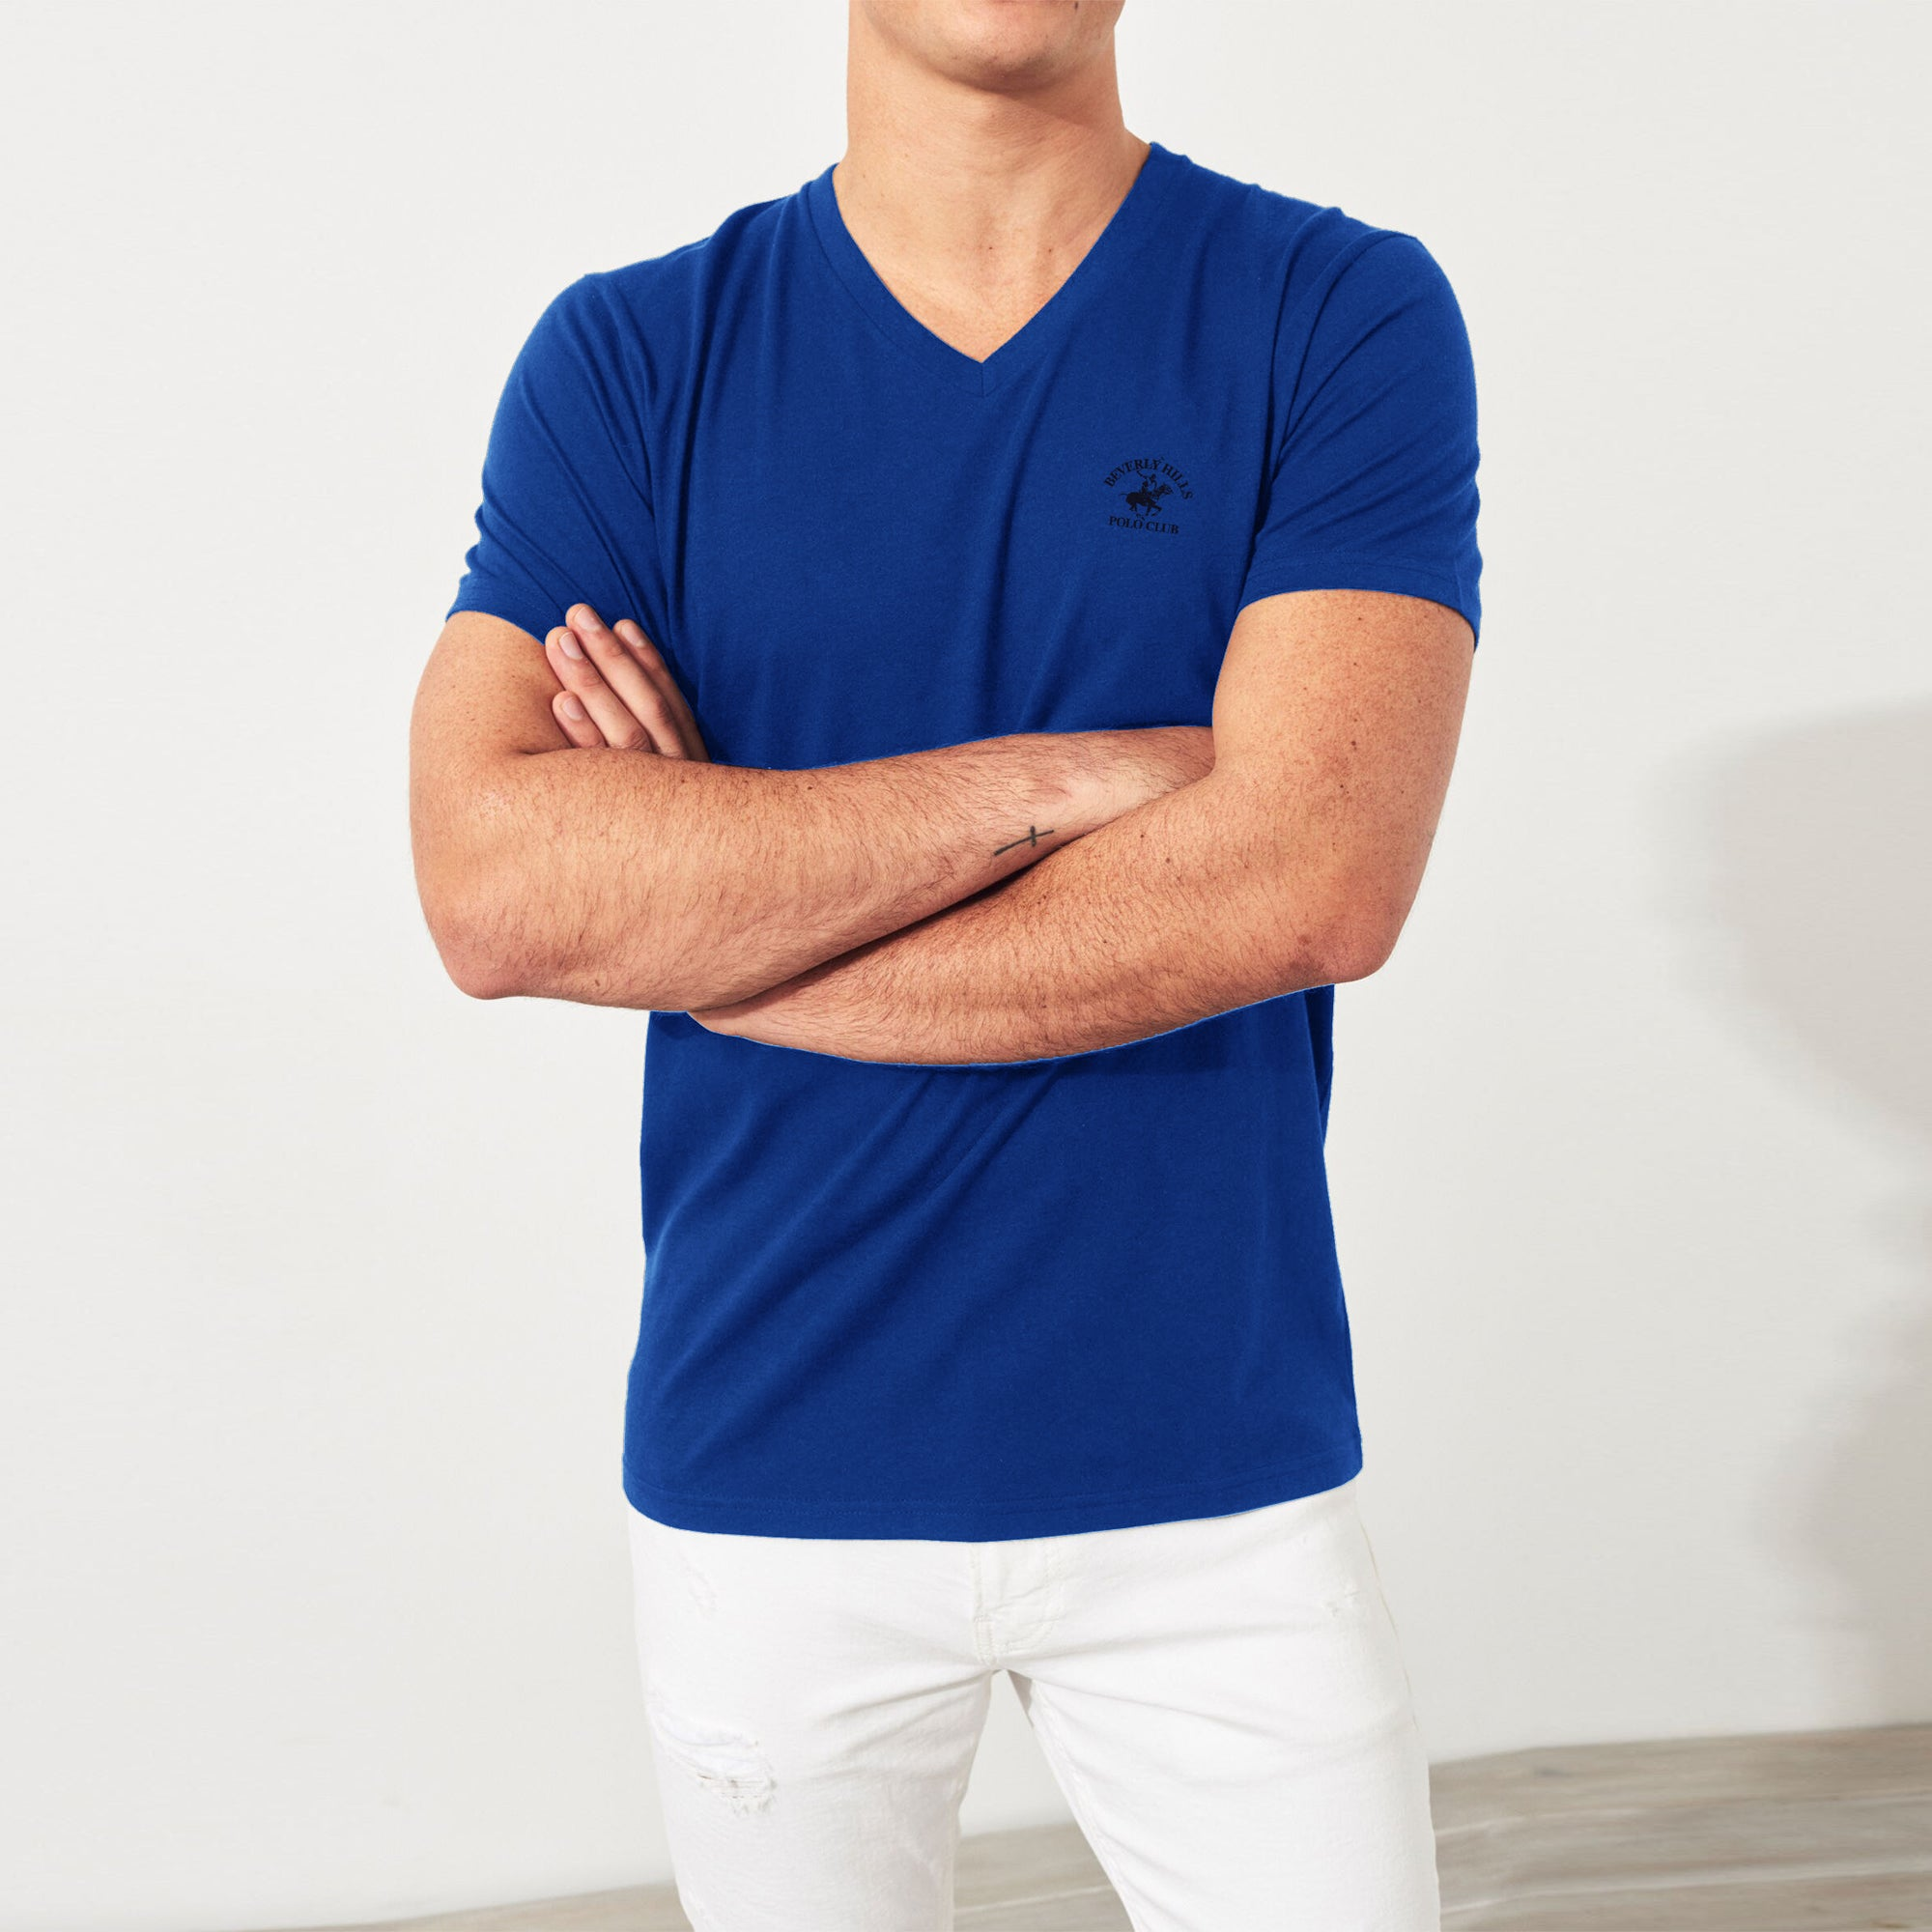 Beverly Hills V Neck Half Sleeve Tee Shirt For Men-NA9028